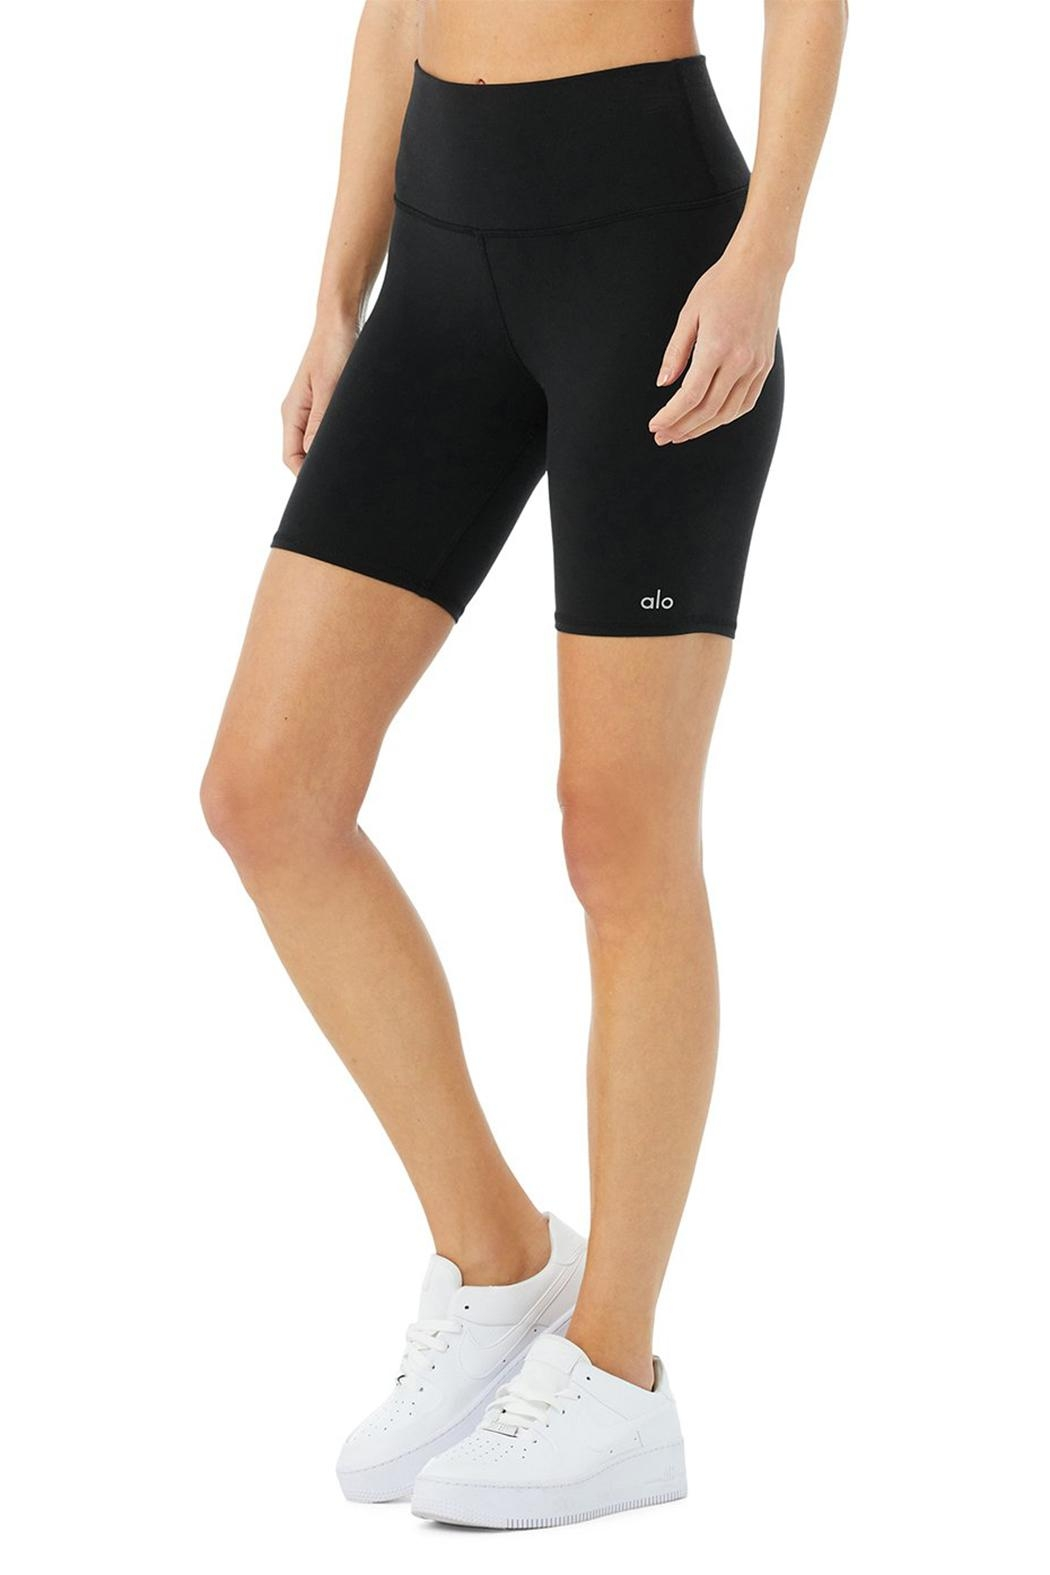 ALO High-Waist Biker Short - Front Full Image